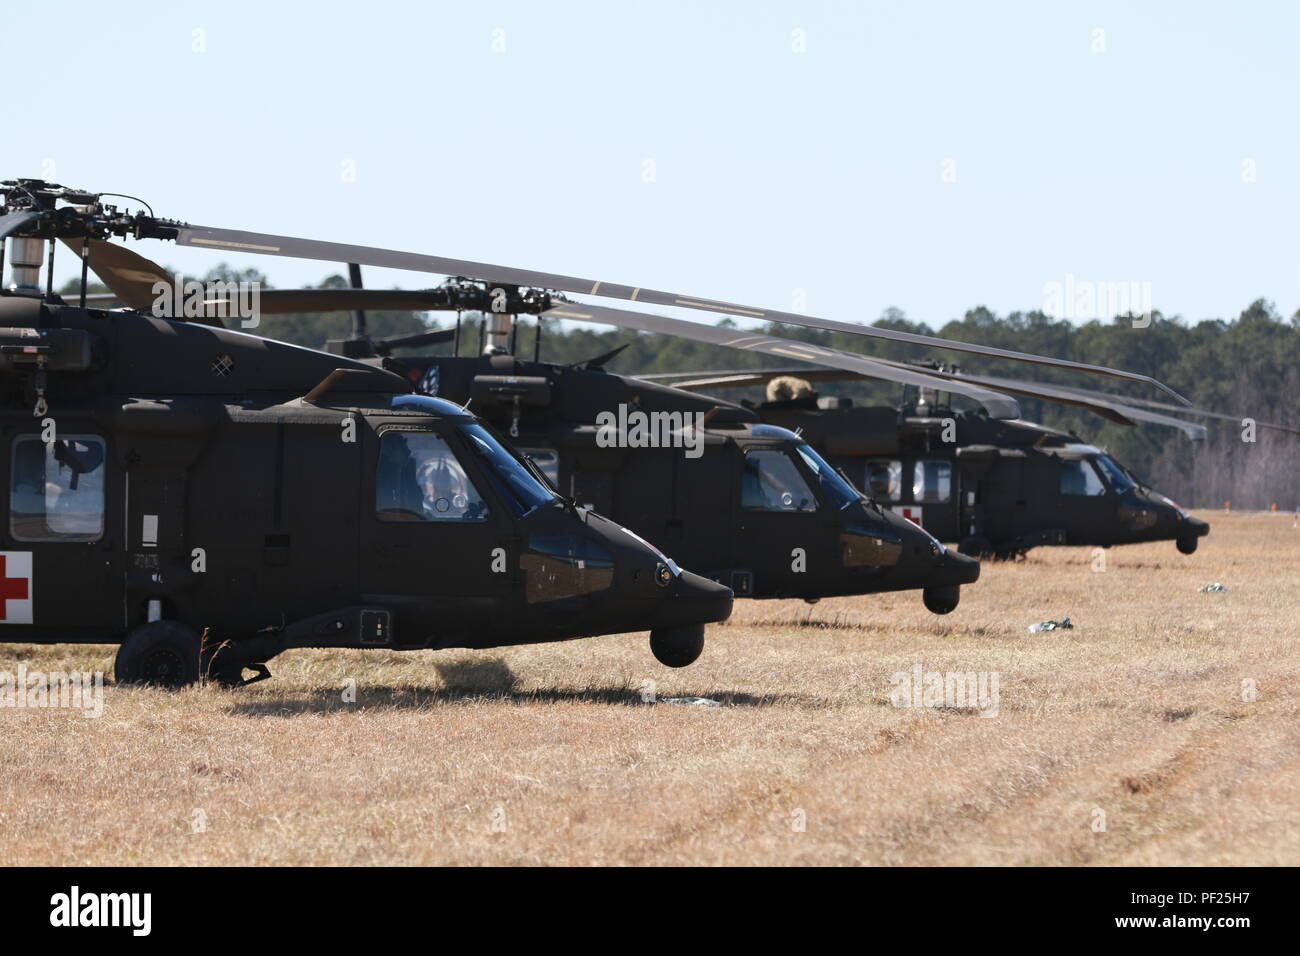 UH-60s assigned to Charlie Company, 3rd General Support Aviation Battalion, 82nd Combat Aviation Brigade, sit waiting for their next mission, Fort Pickett, Va., Feb. 29. The helicopters provided aerial medical evacuation support to no only the CAB, but to 5th Squadron, 73rd Cavalry Regiment, 3rd Brigade Combat Team, allowing their combat medics the chance to practice resuce hoist operations. (U.S. Army photo by Staff Sgt. Christopher Freeman/ 82nd CAB PAO) - Stock Image